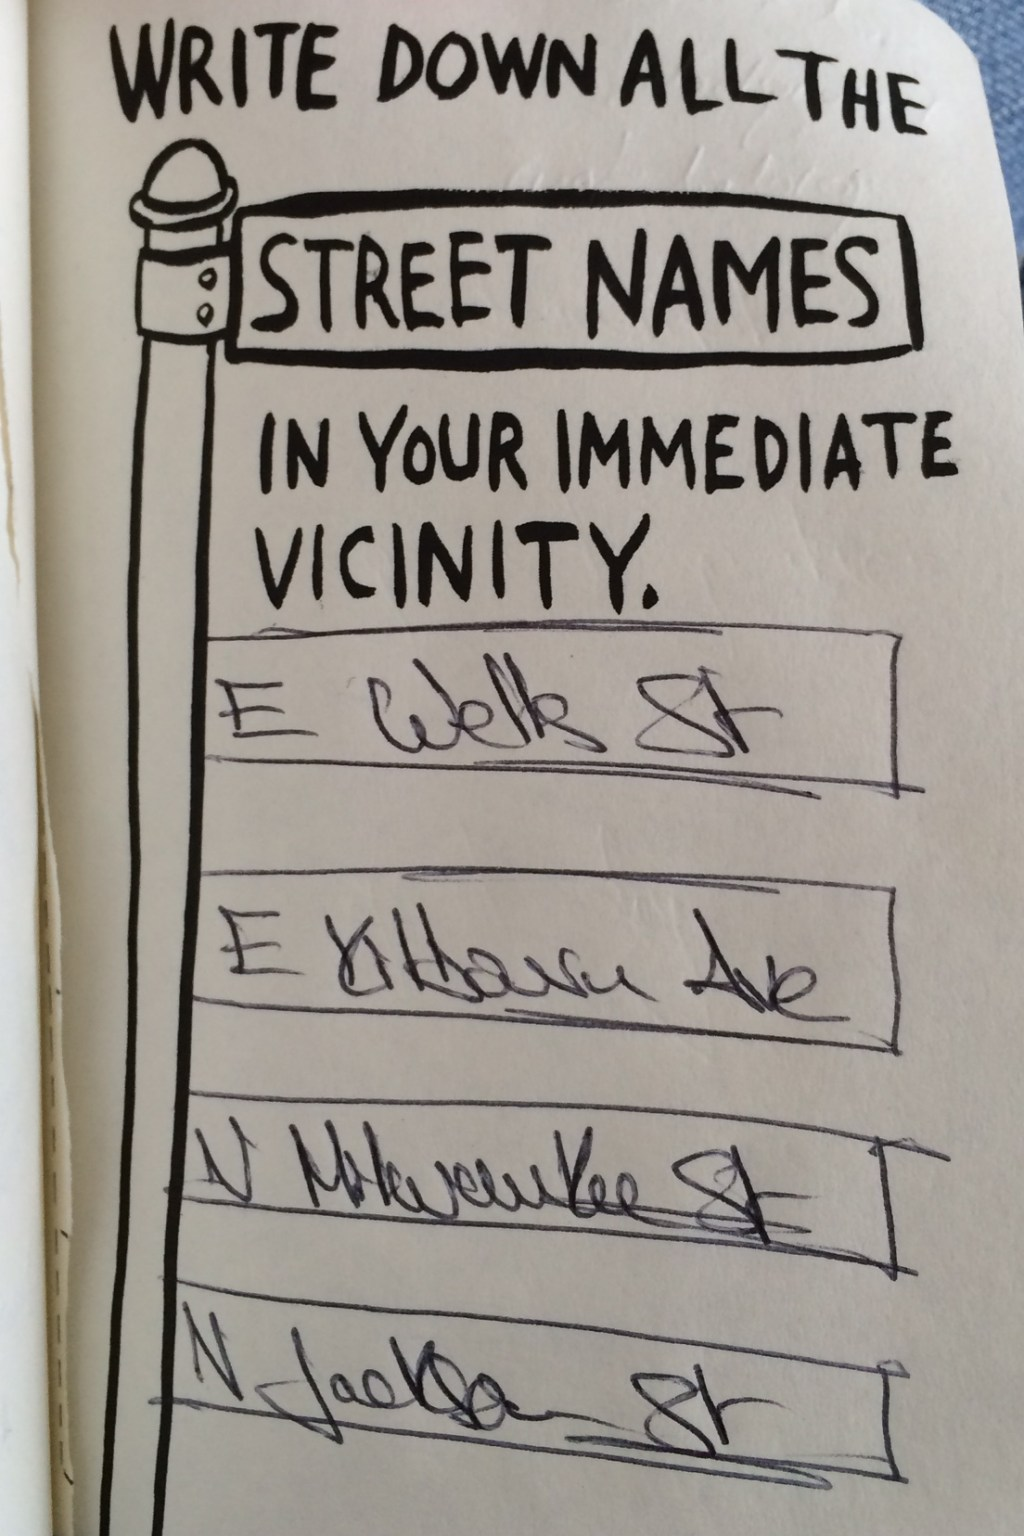 Write down all the street names in your immediate vicinity.